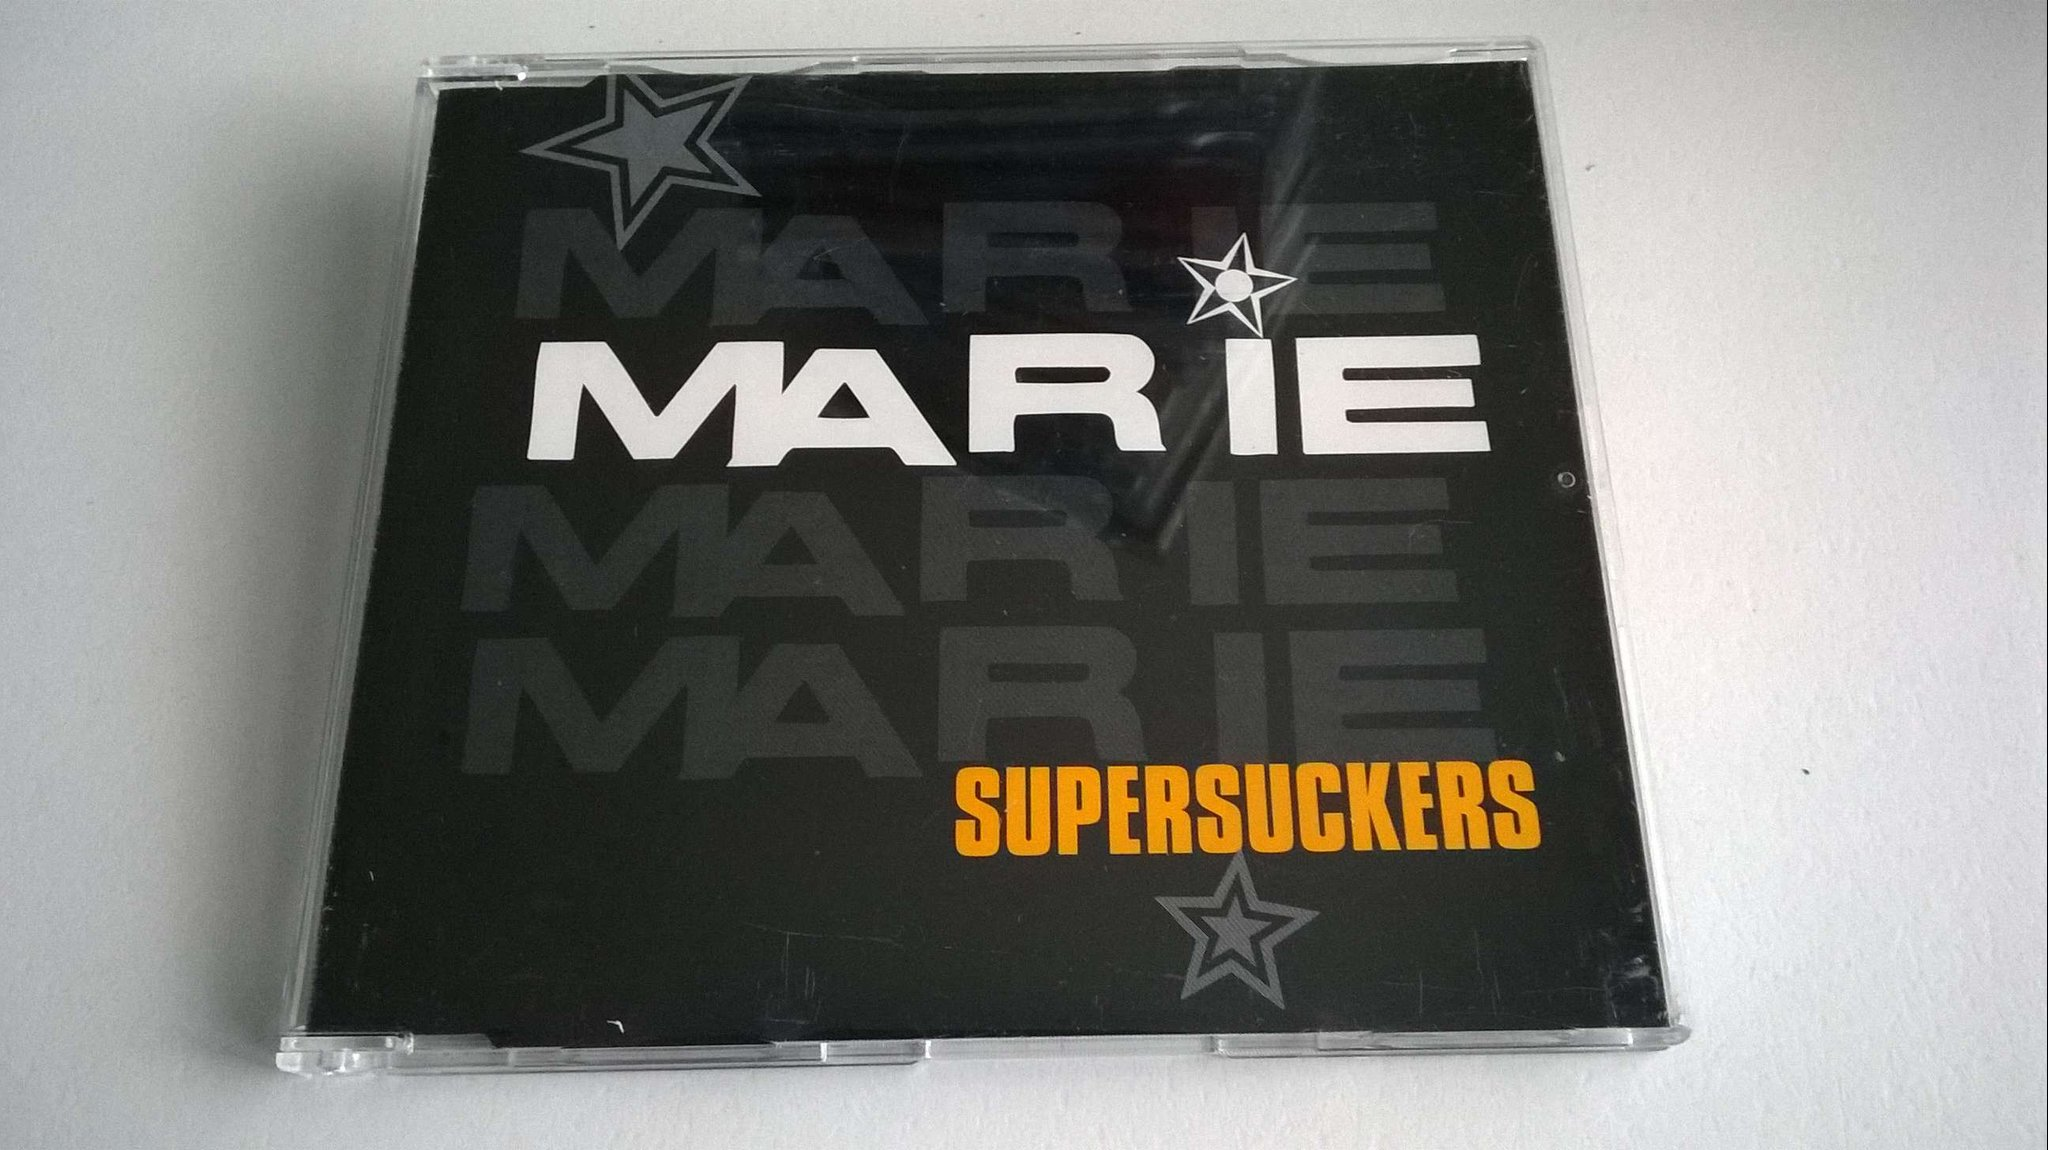 Marie - Supersuckers, CD, Single